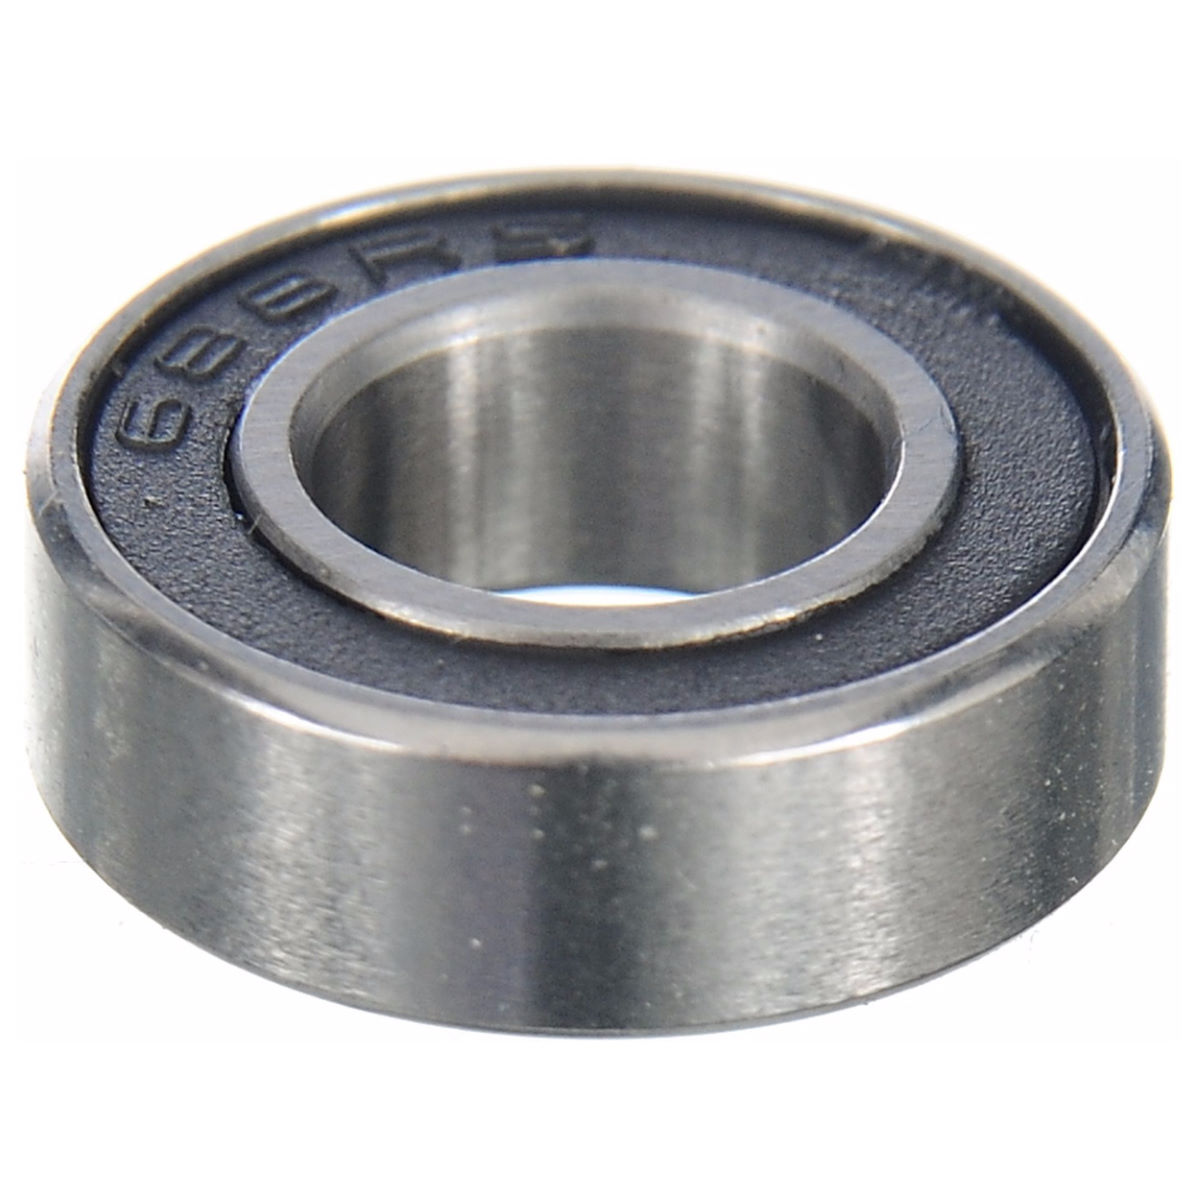 Brand-X Brand-X Sealed Bearing - 688 2RS Bearing   Wheel Hub Spares